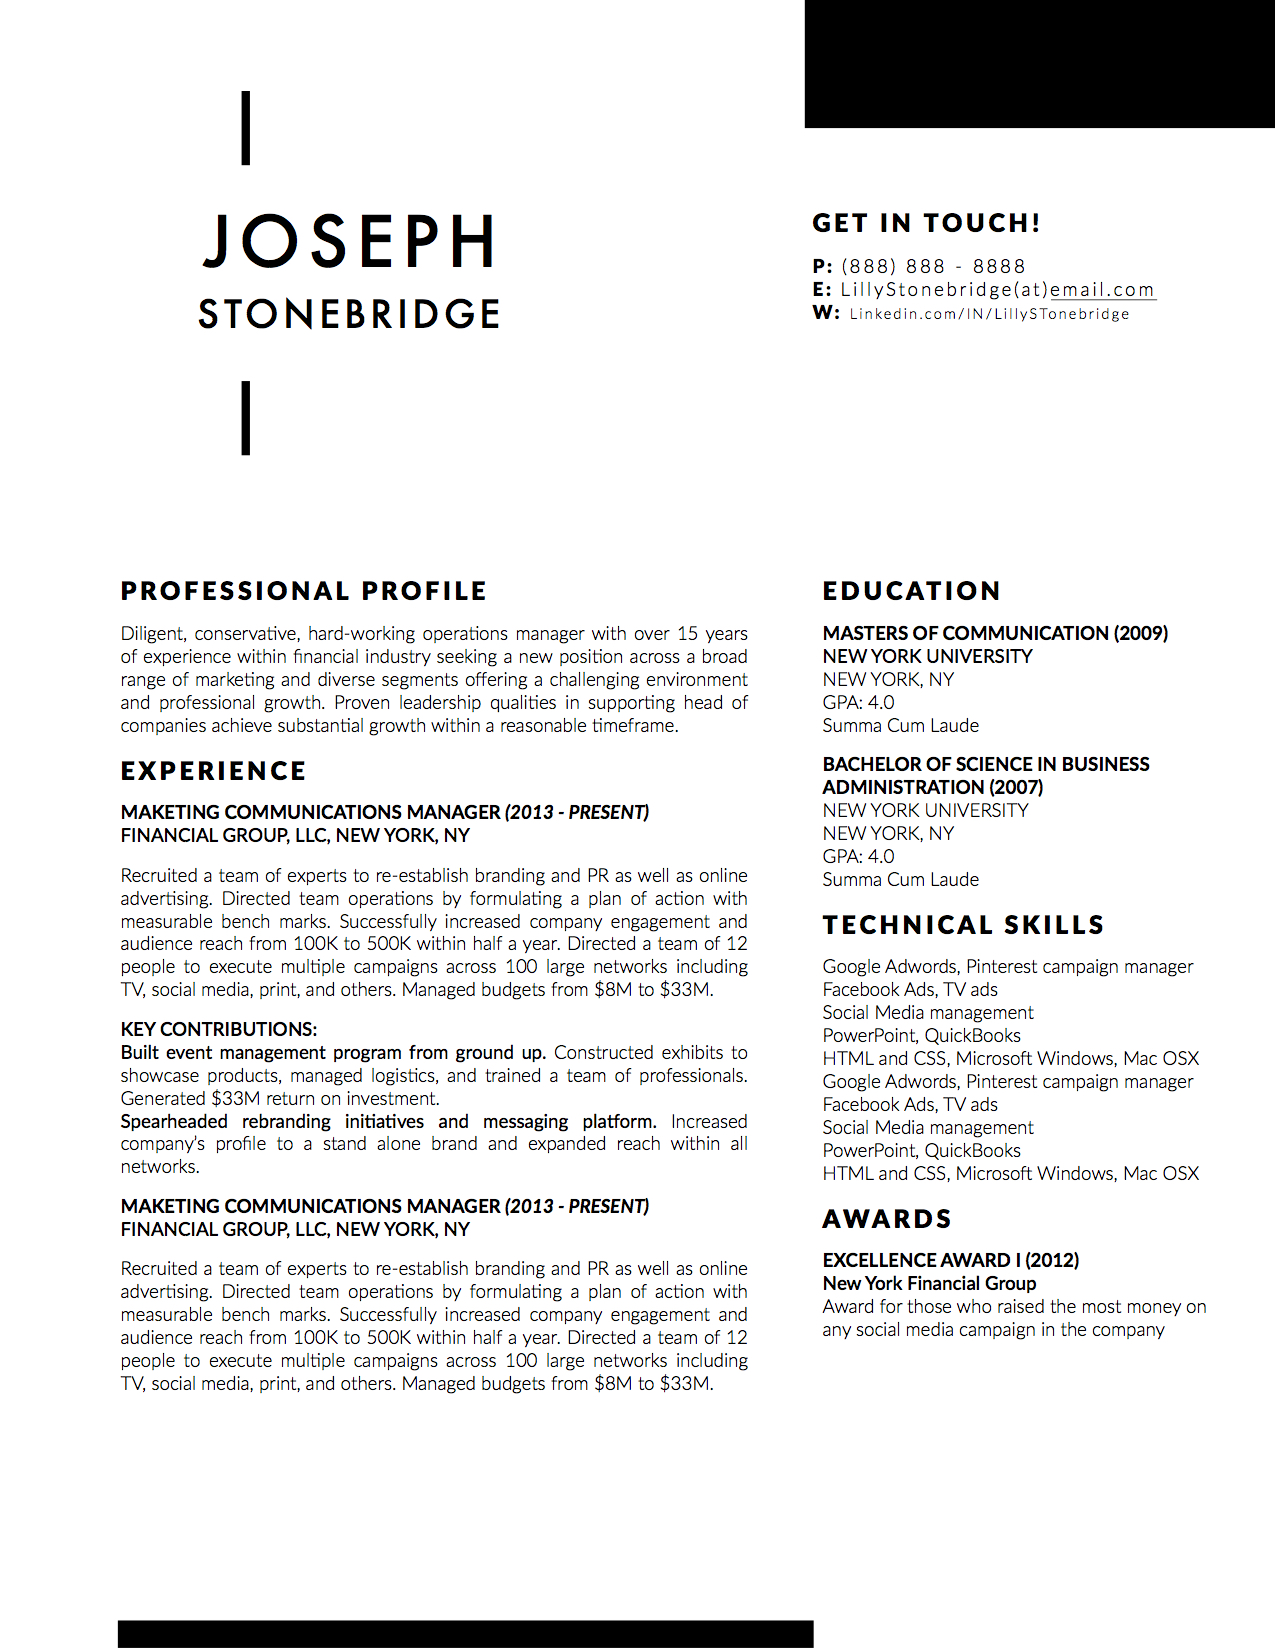 Joseph stonebridge resume template stand out shop joseph stonebridge downloadable resume cover template and cover letter template for microsoft word and apple spiritdancerdesigns Choice Image